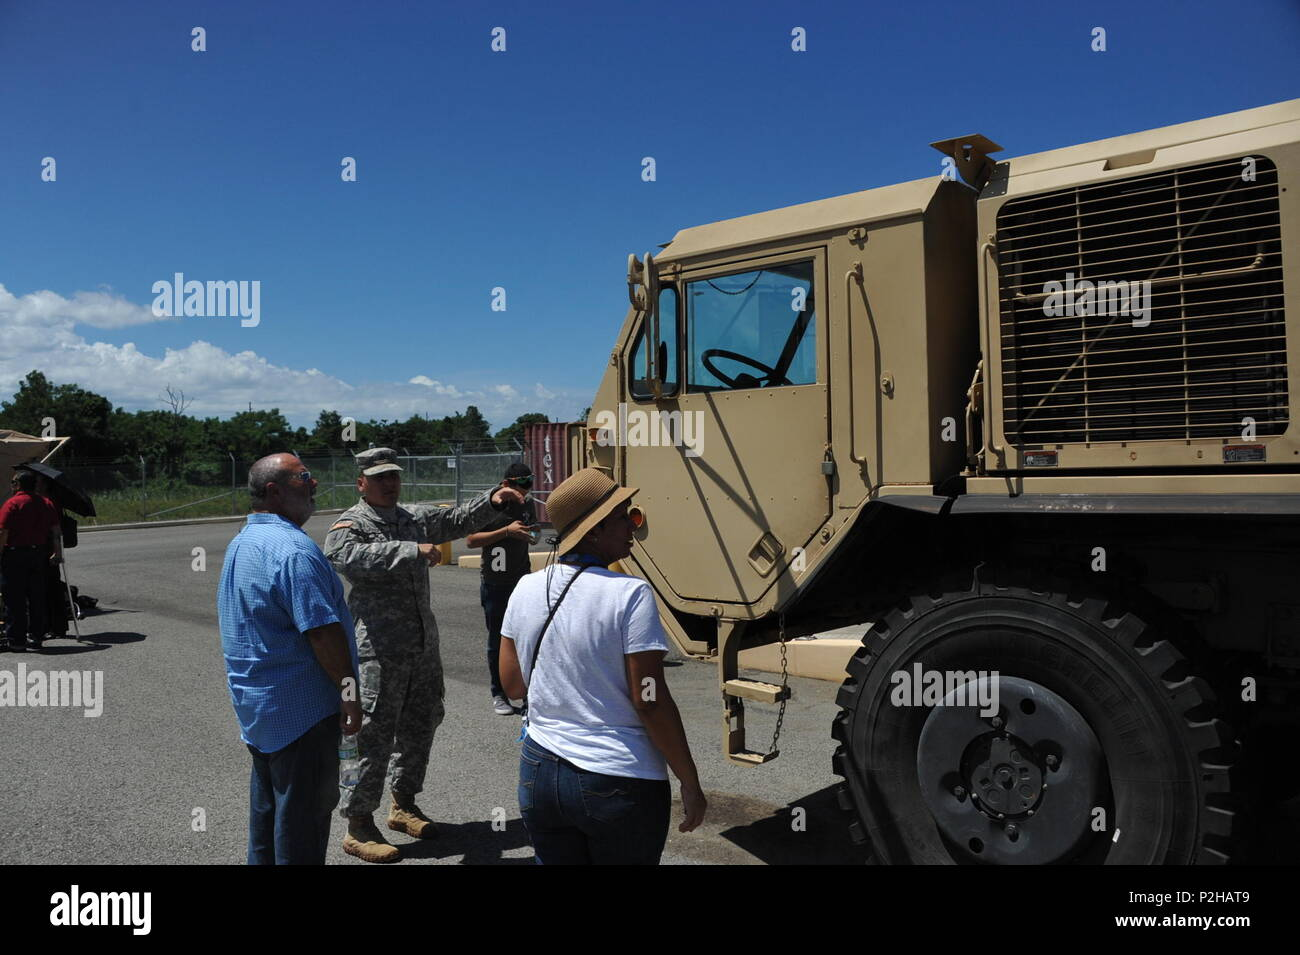 Sgt. Nathaniel Rivera informs his mother-in-law and father-in-law of the purpose of the vehicles on exhibit after the 246th Quartermaster Co. (MA) farewell ceremony at the Army Reserve Center at Mayaguez, PR. - Stock Image